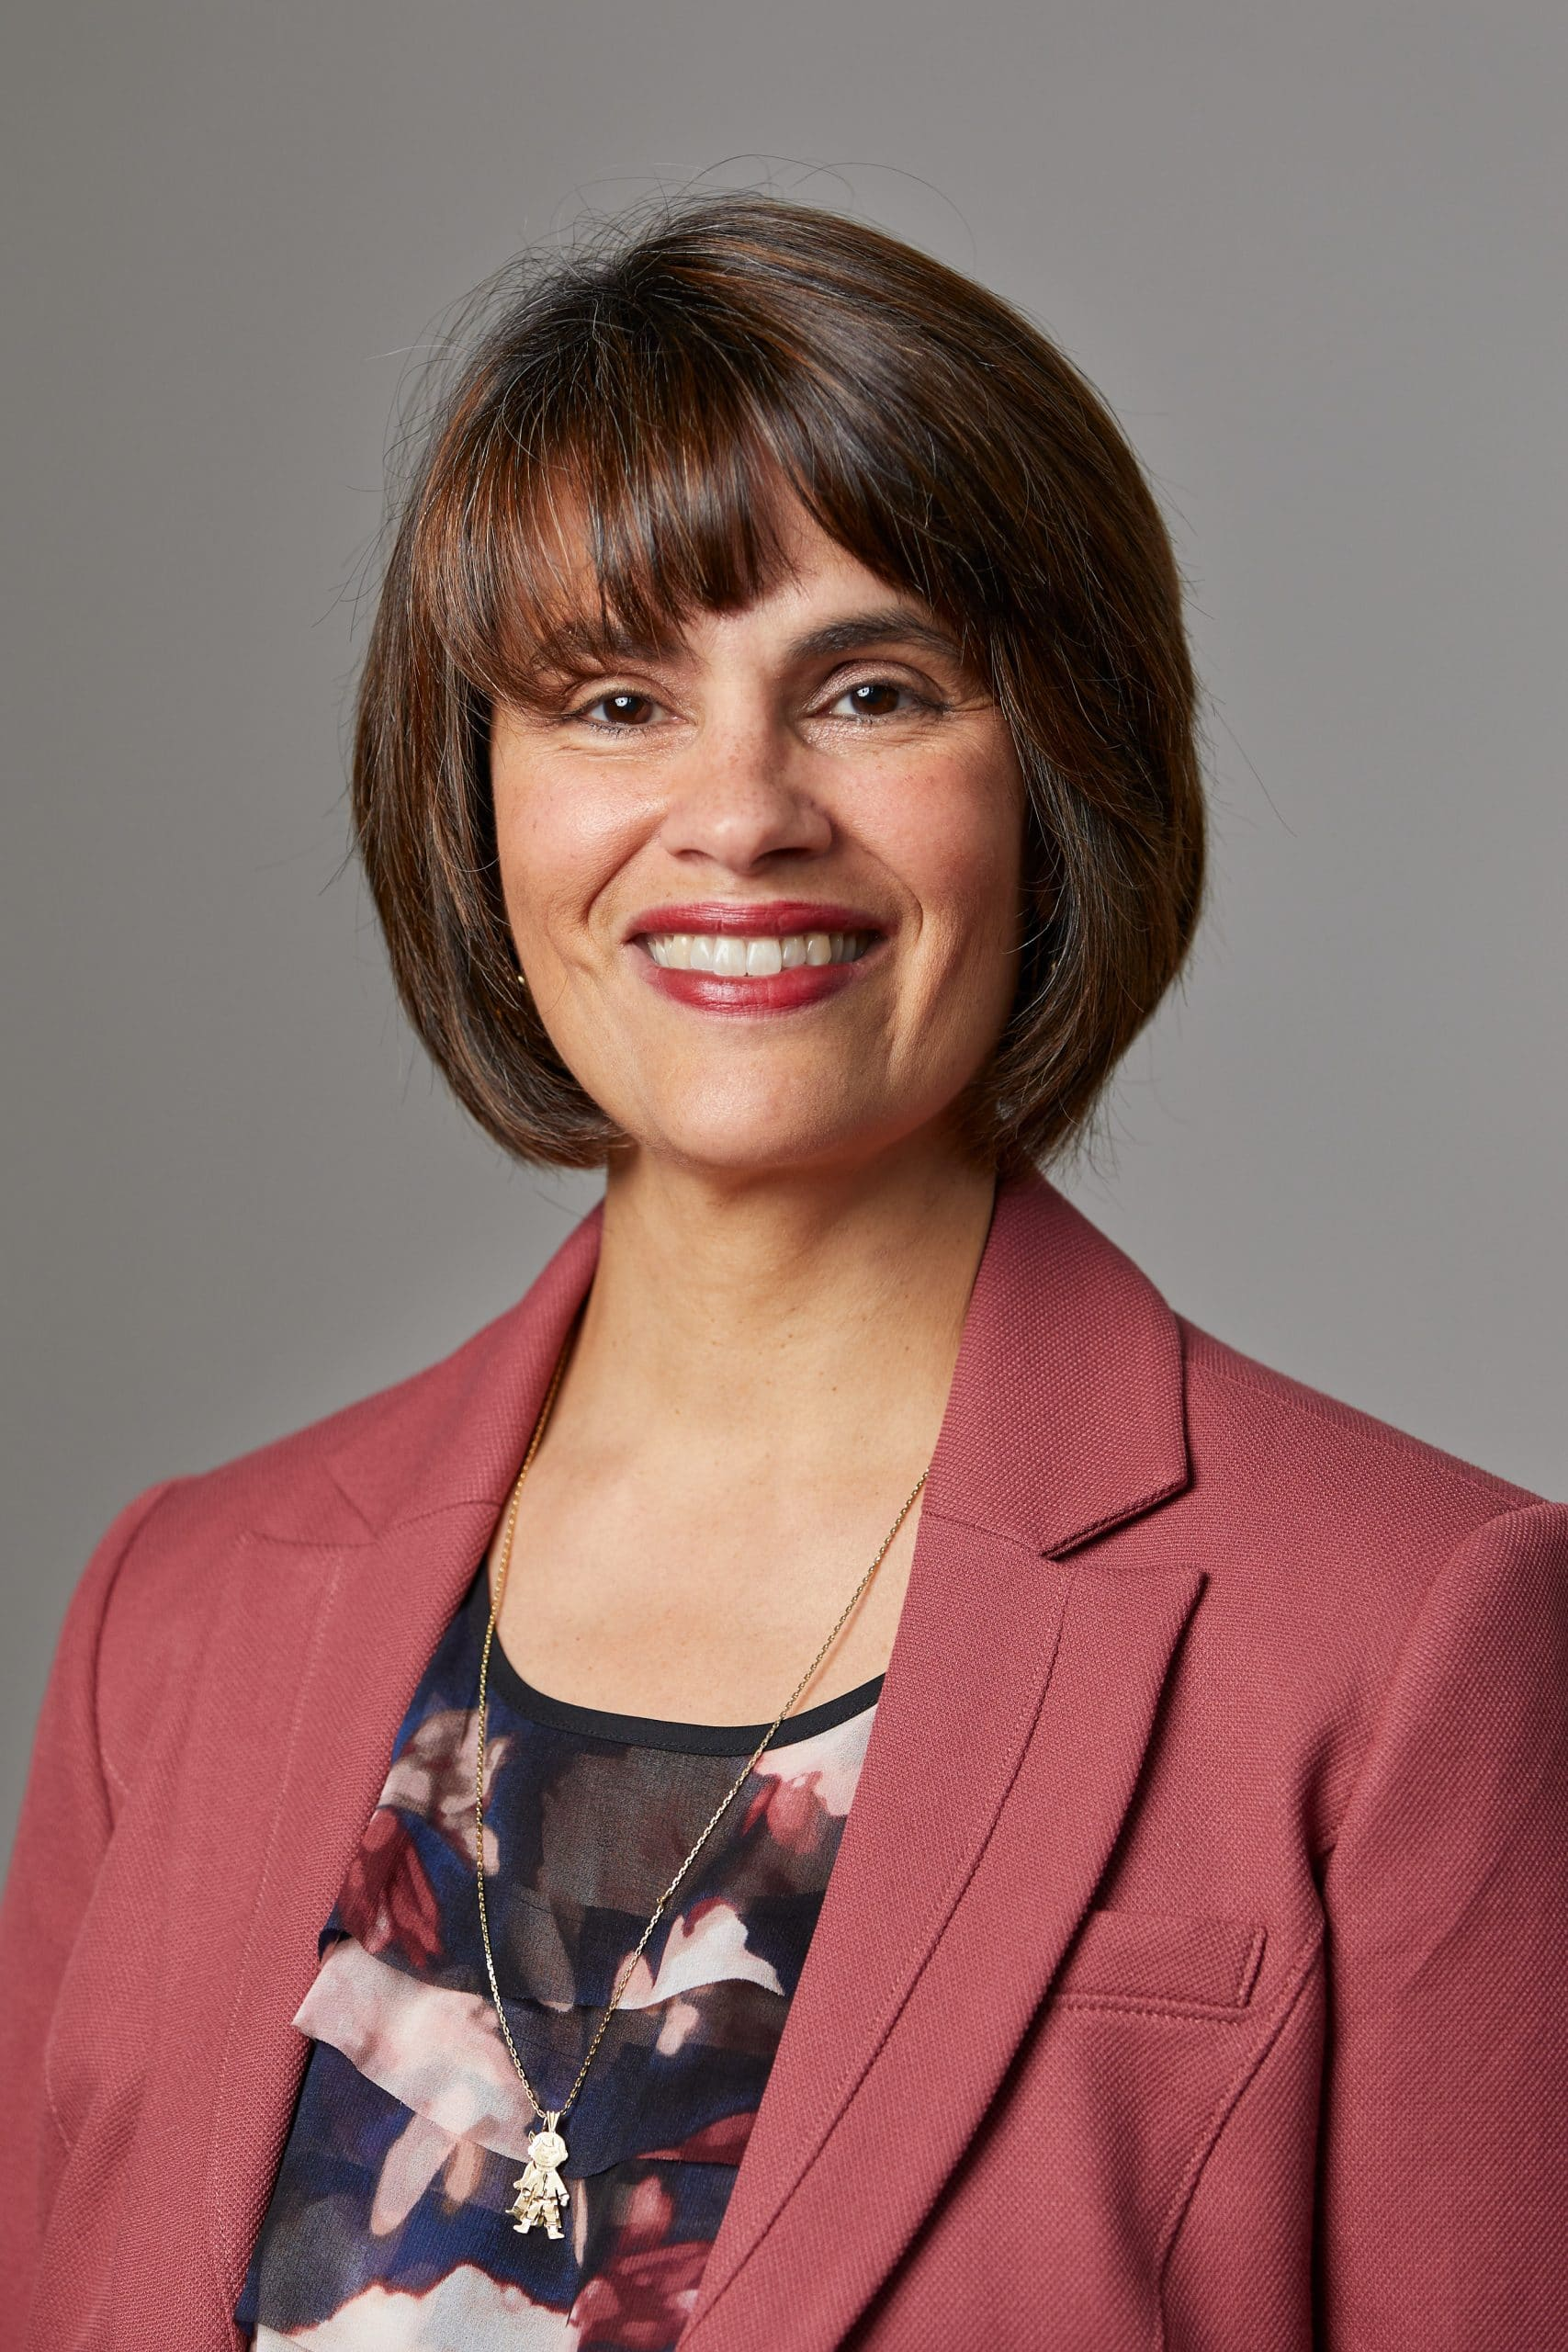 Christine A. Soto Appointed to the Advisory Board of NJ LEEP